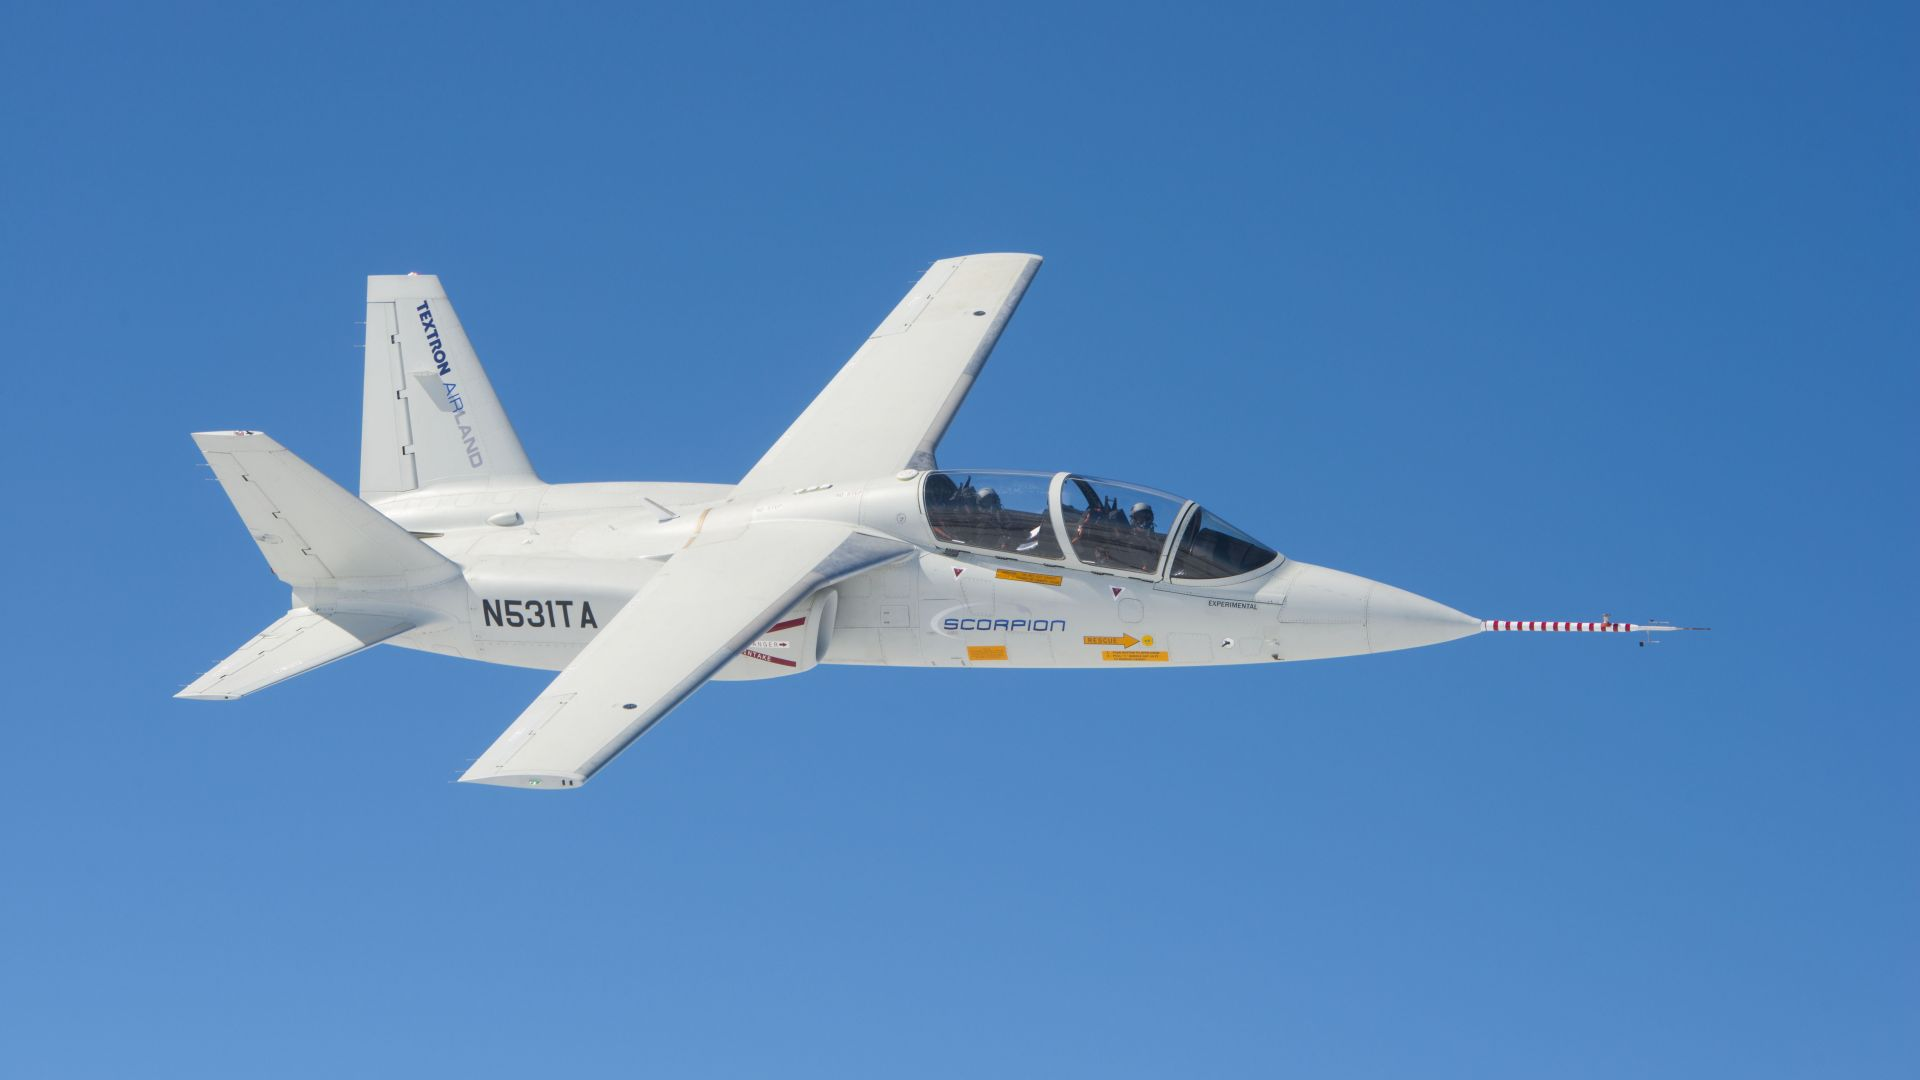 Textron AirLand Scorpion, USA army, fighter aircraft, air force, USA (horizontal)